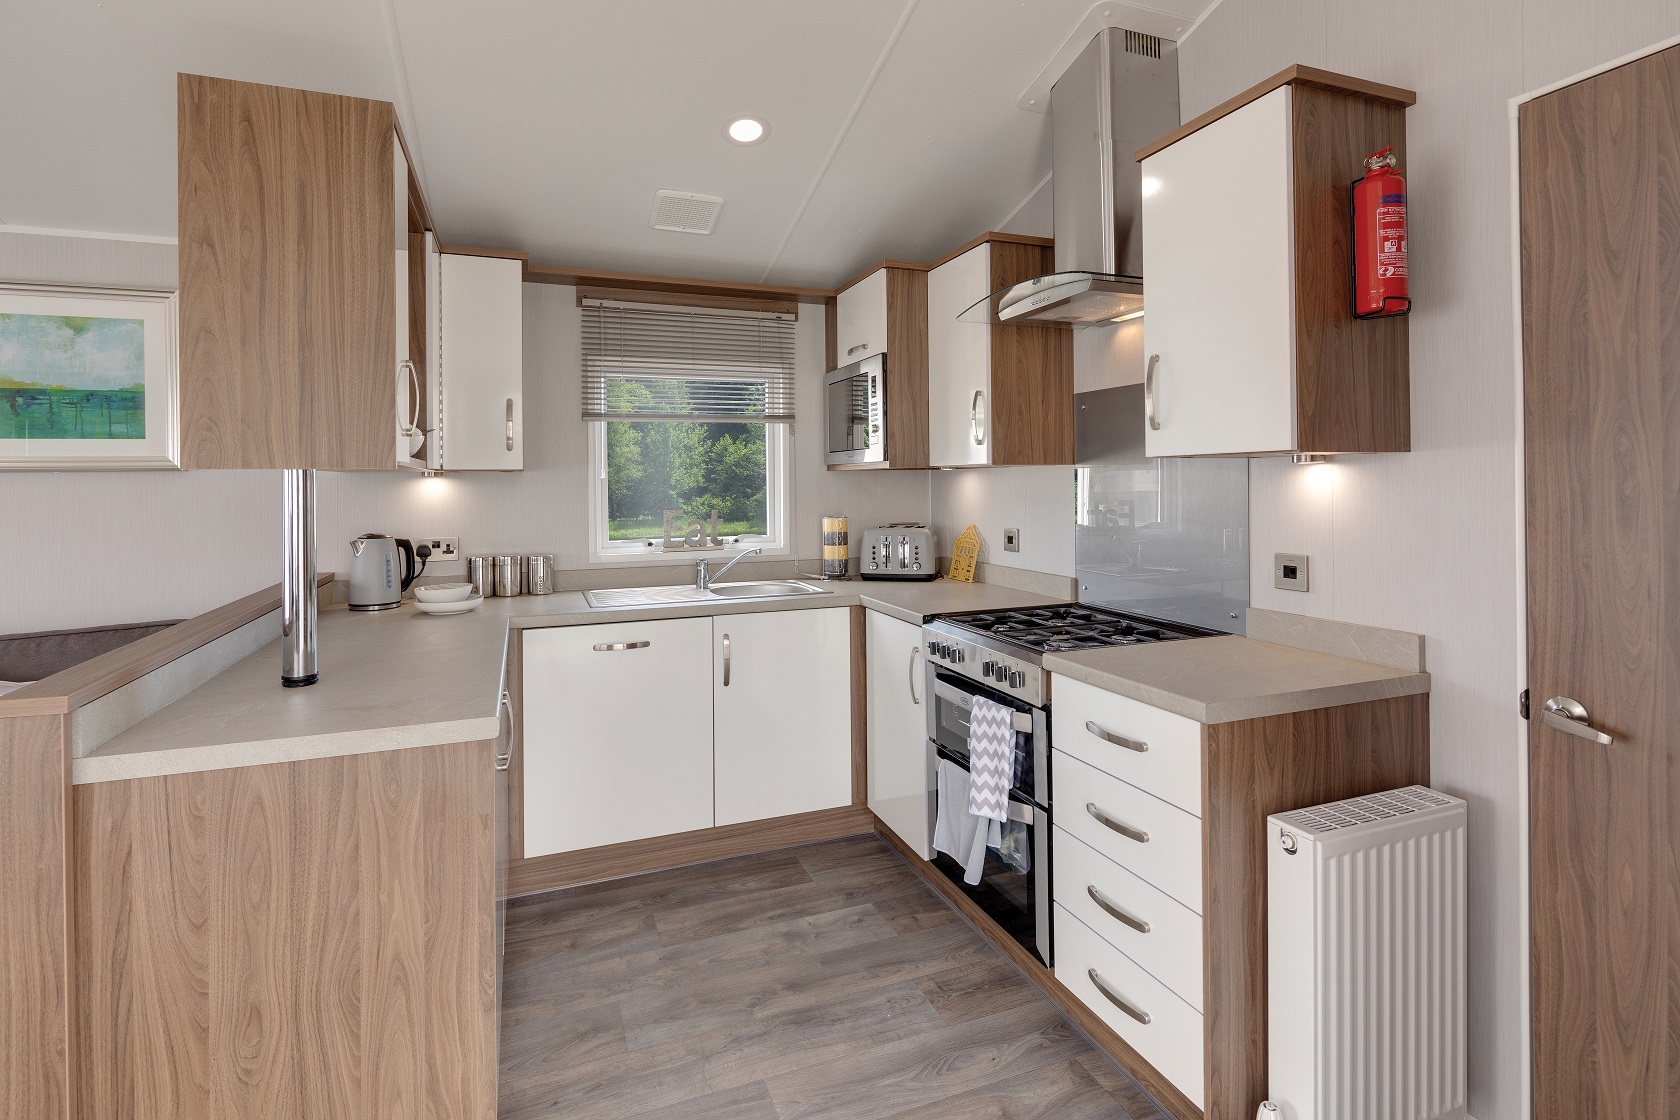 Willerby Avonmore: New Static Caravans and Holiday Homes for Sale, Adderstone, Belford Large Image 3